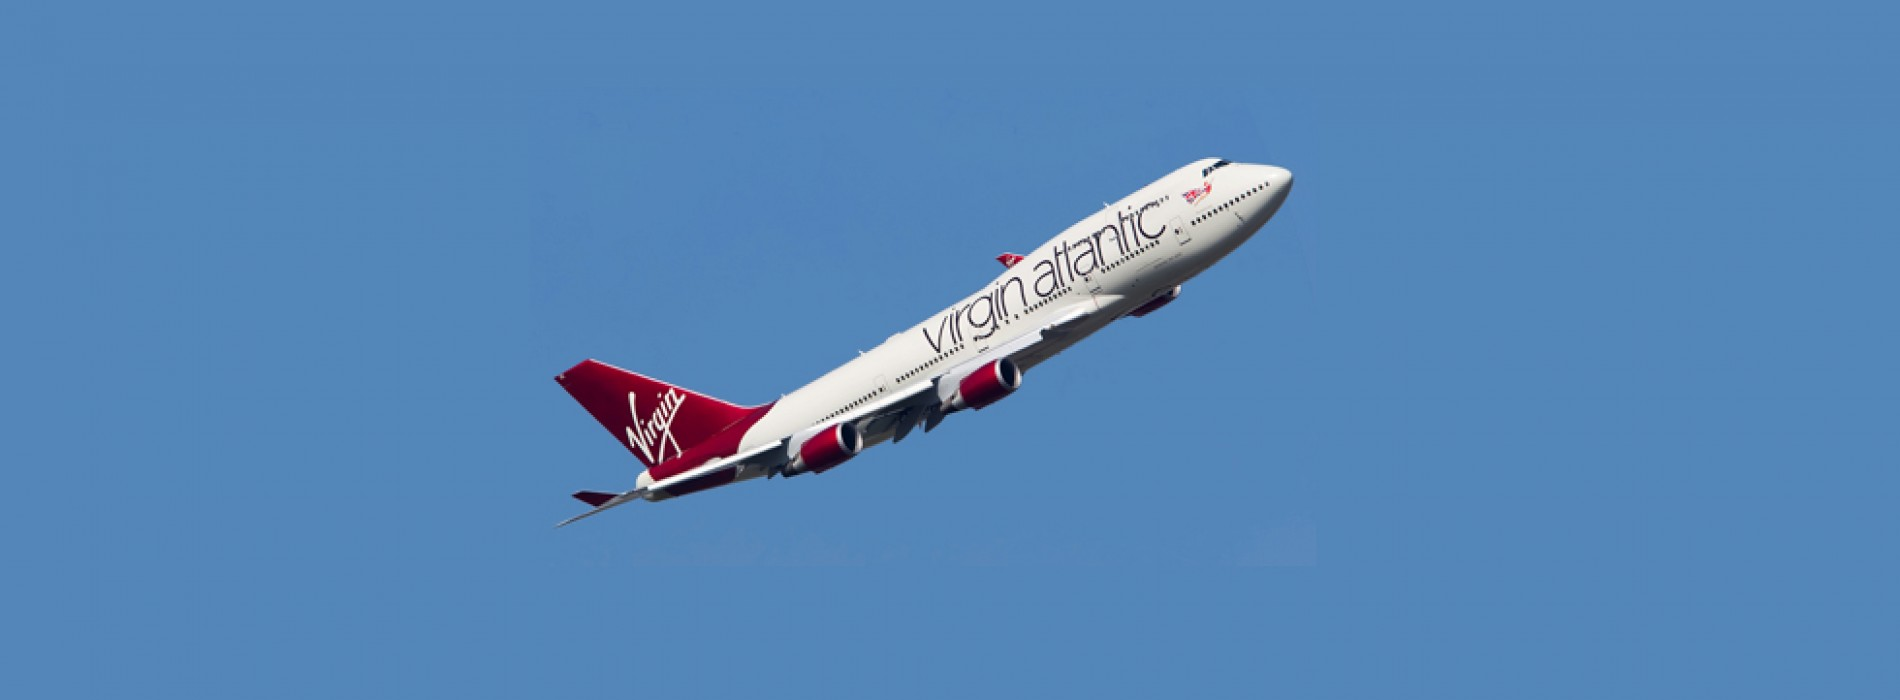 Virgin Atlantic to launch first direct Heathrow-Barbados flight